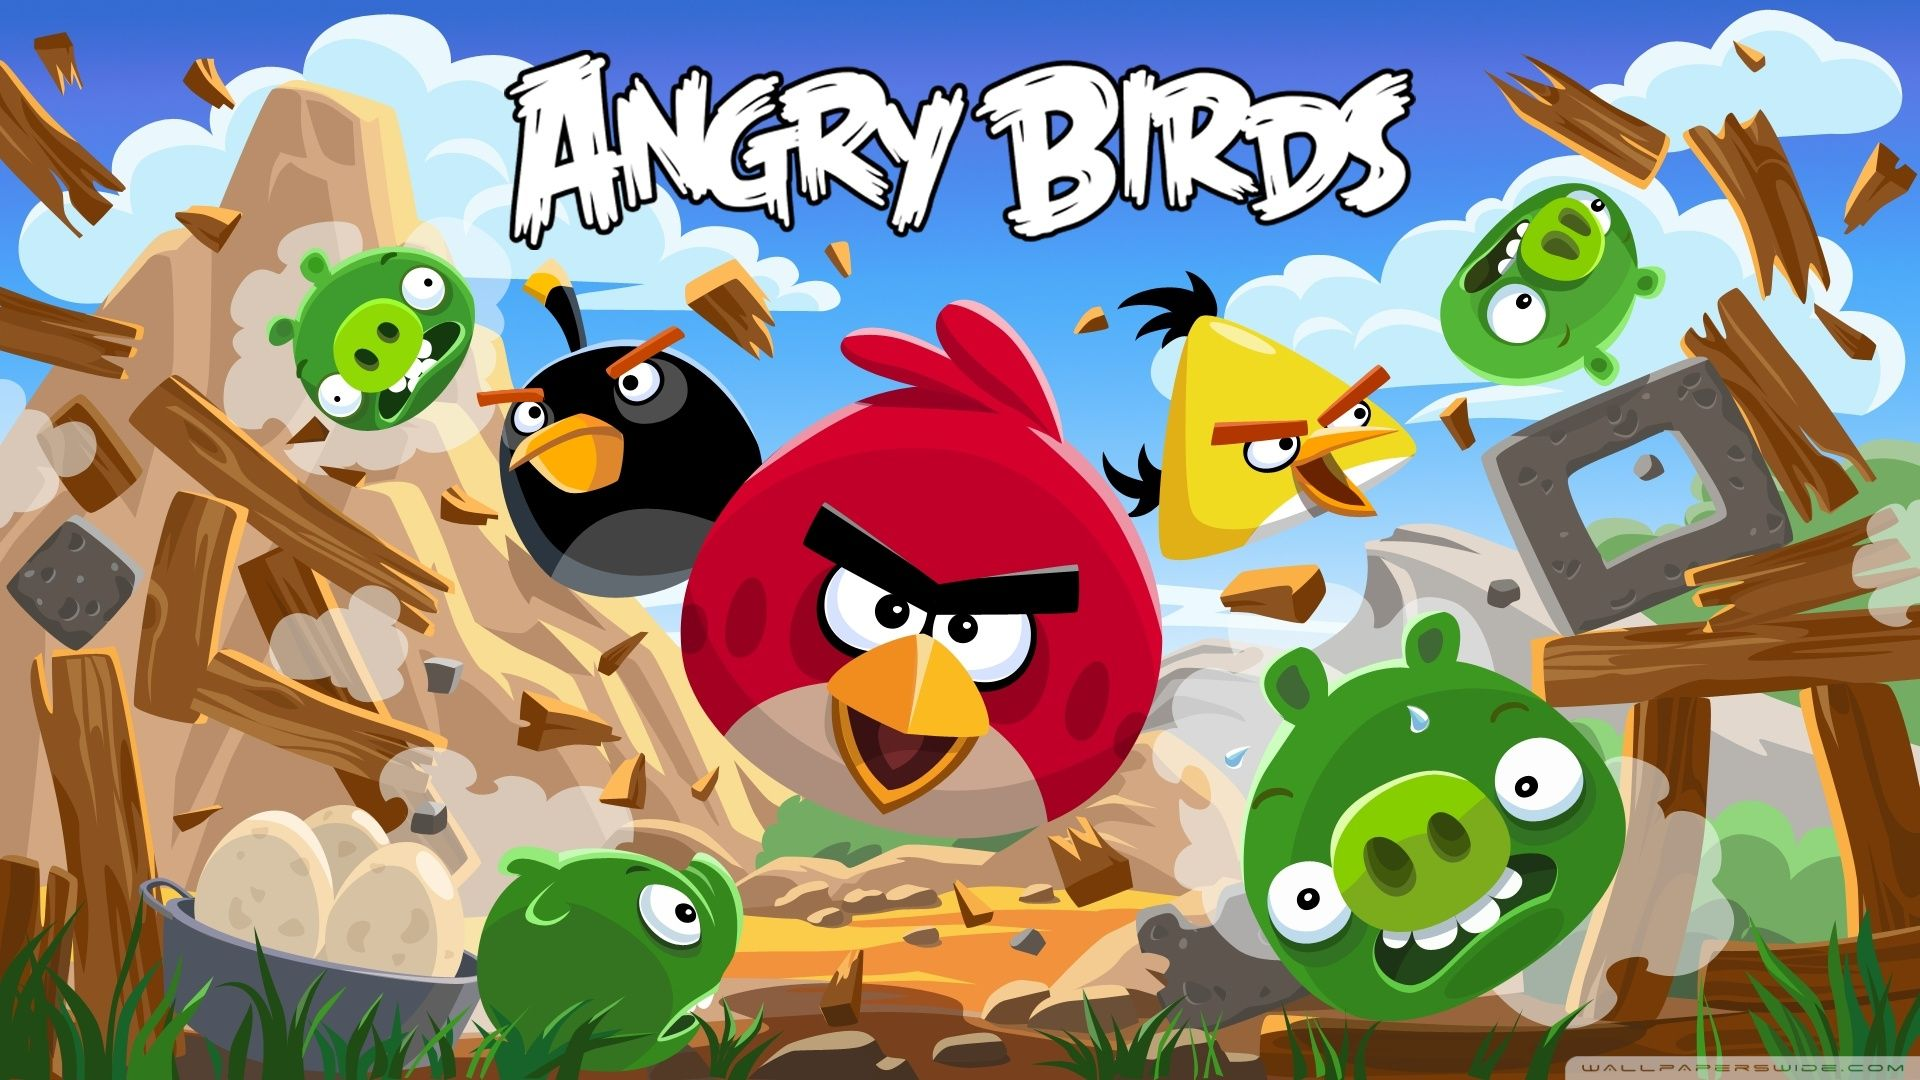 5 angry birds seasons hd wallpapers backgrounds wallpaper abyss a· android appsfree